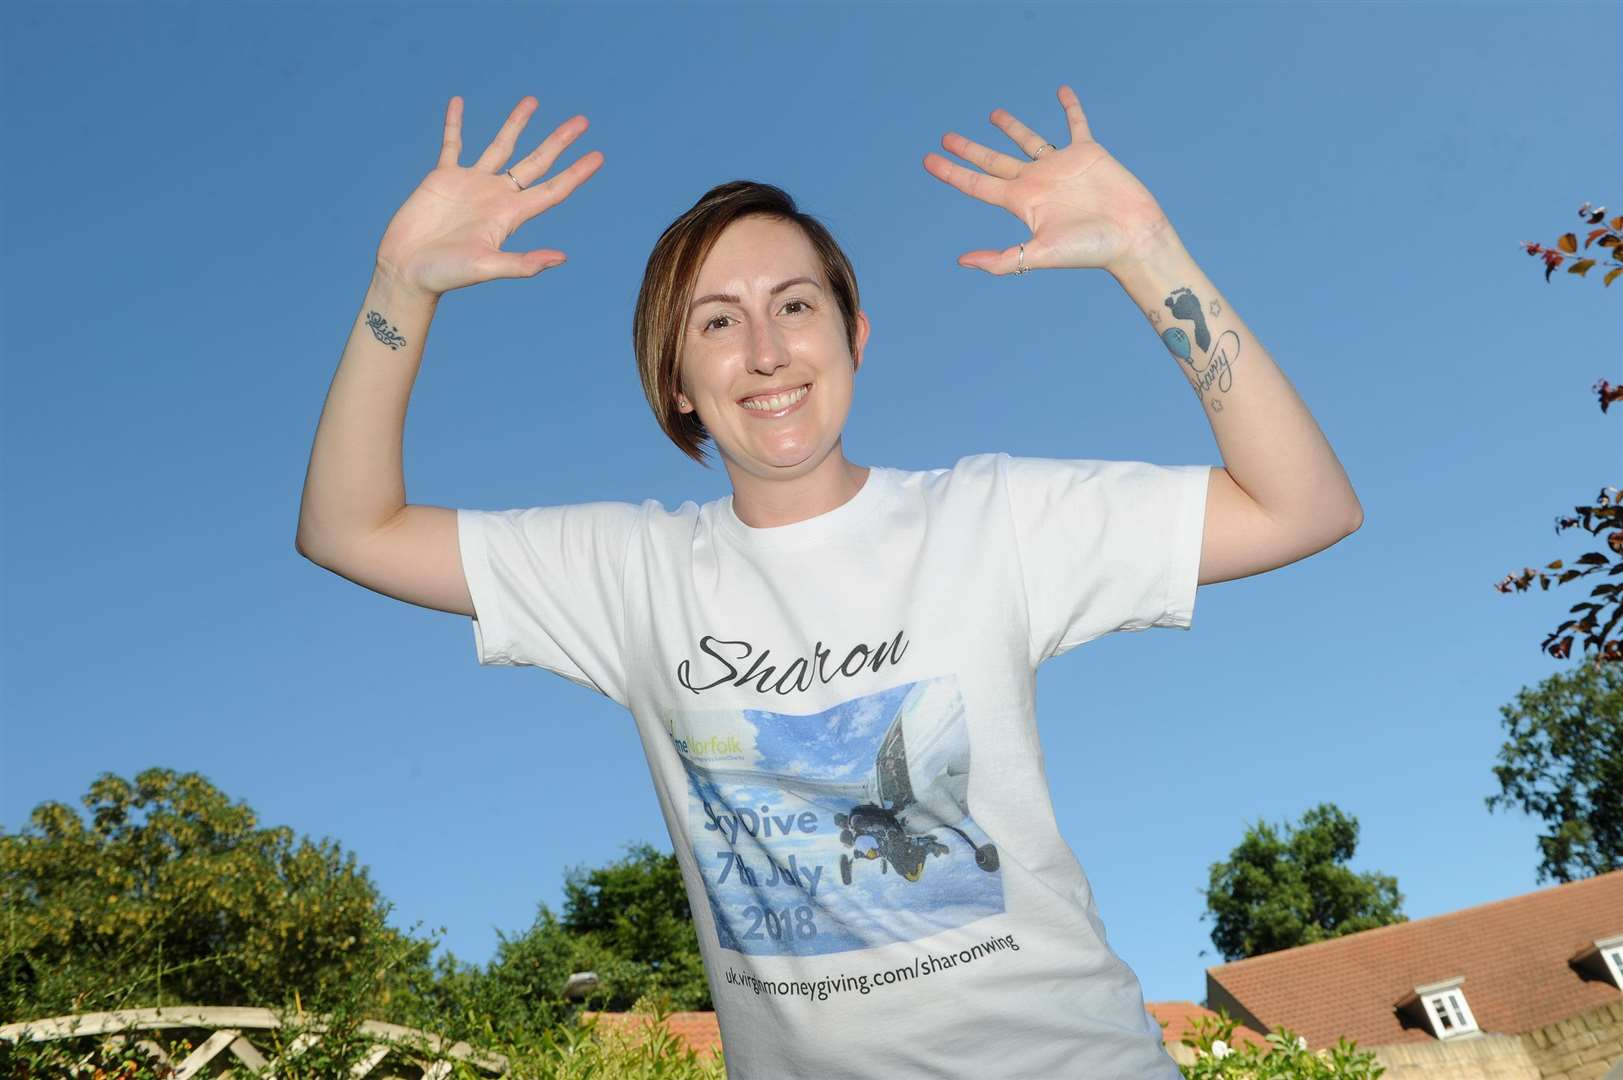 Sharon Wing is doing a 13,000ft skydive to raise money for pregnancy loss charity TimeNorfolk. Picture: Mecha Morton